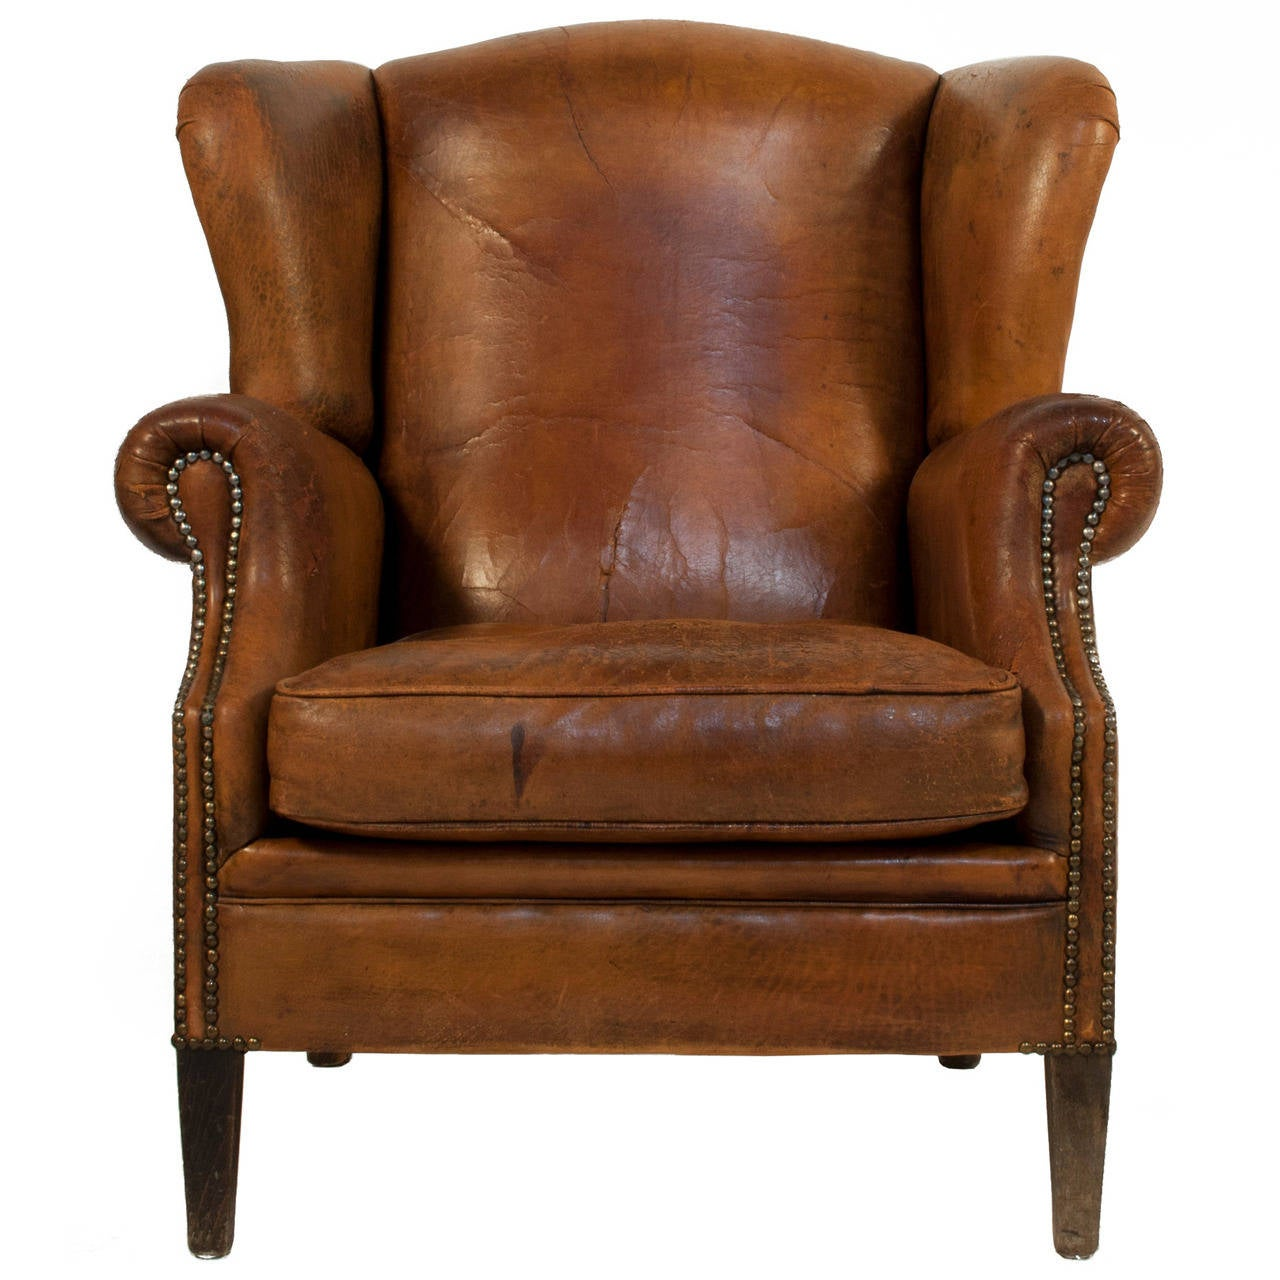 Leather wingback chair at 1stdibs for Furniture chairs